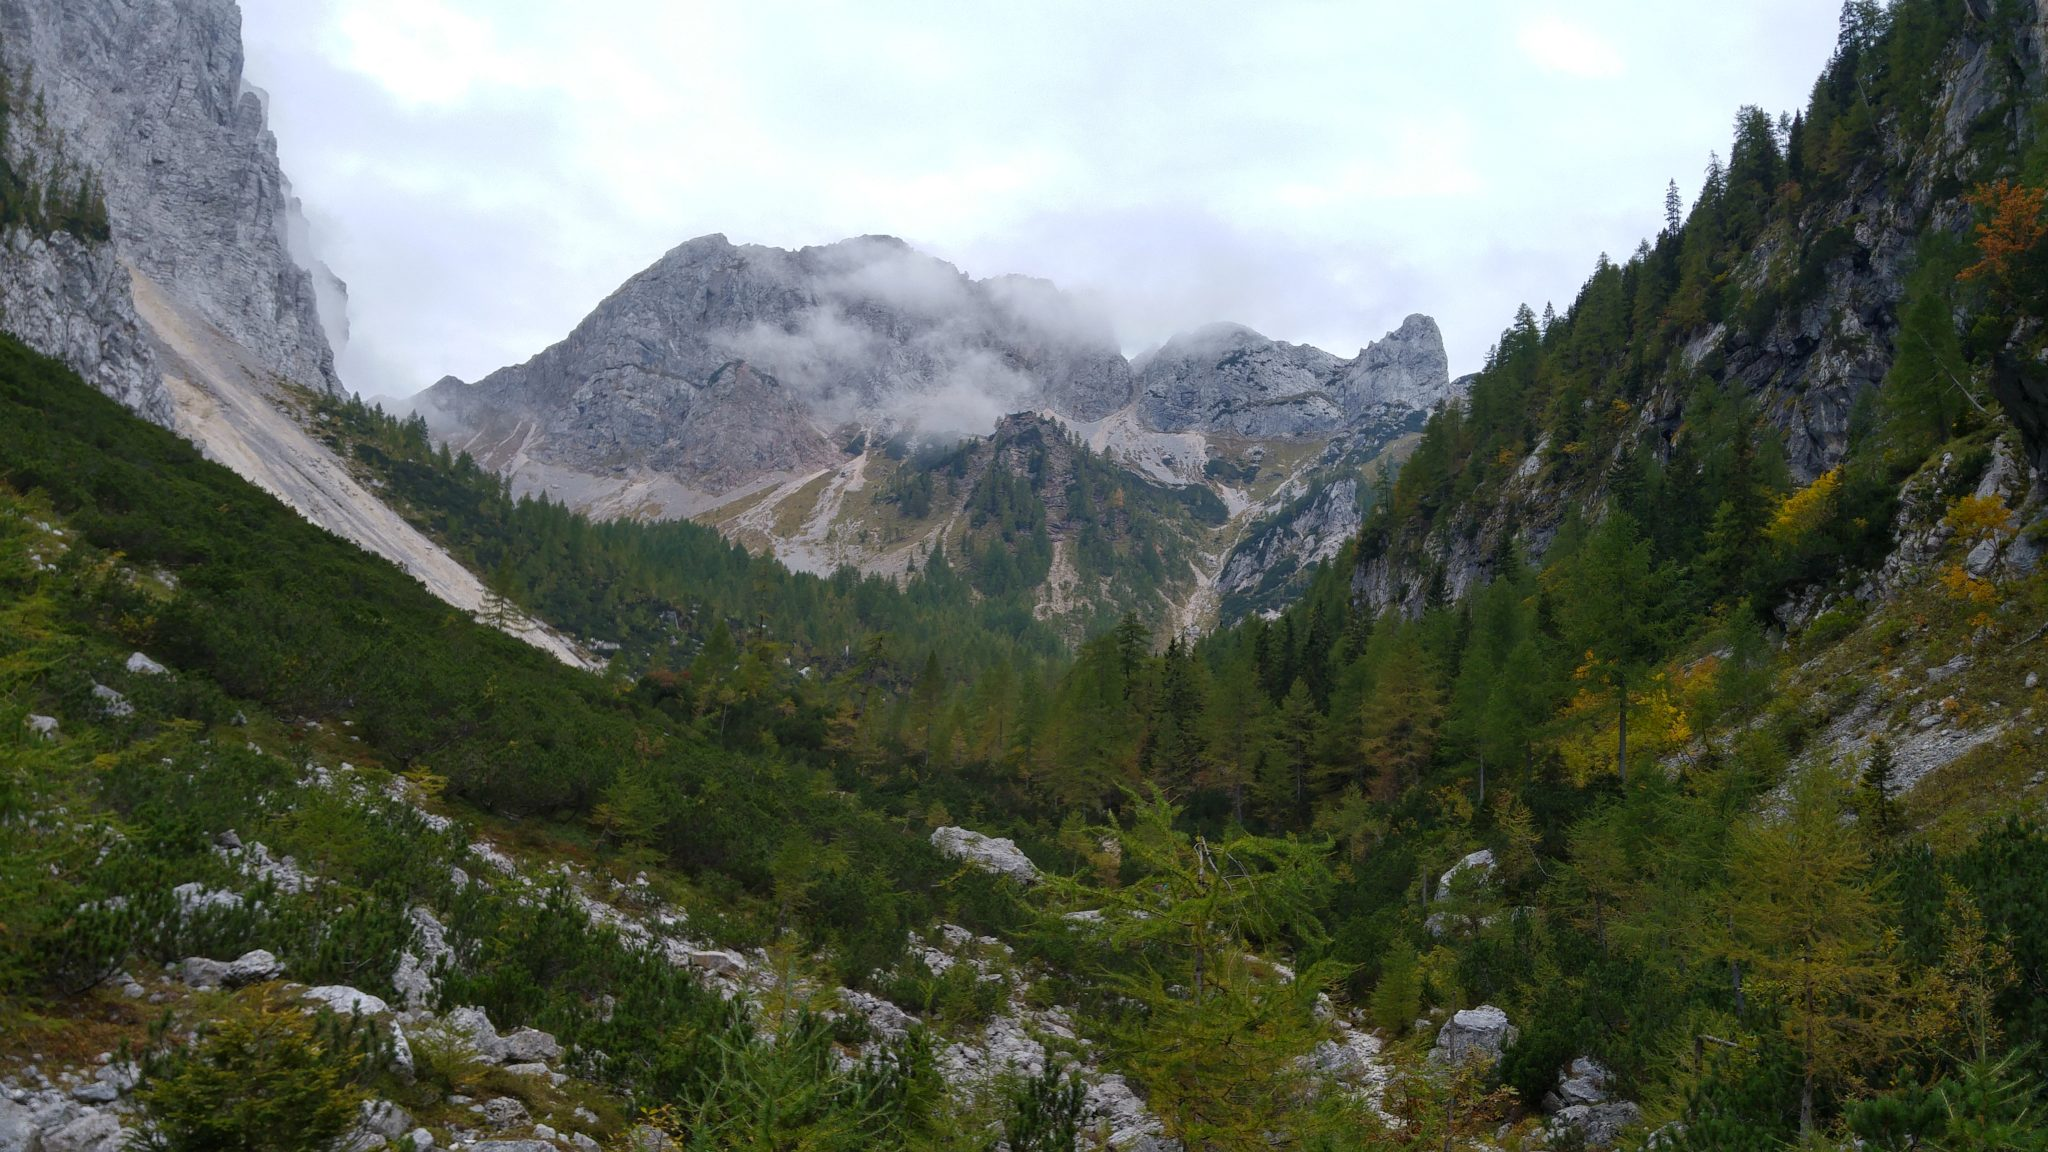 The first section starts in a forest and then passes two open alpine meadows below towering mountains.